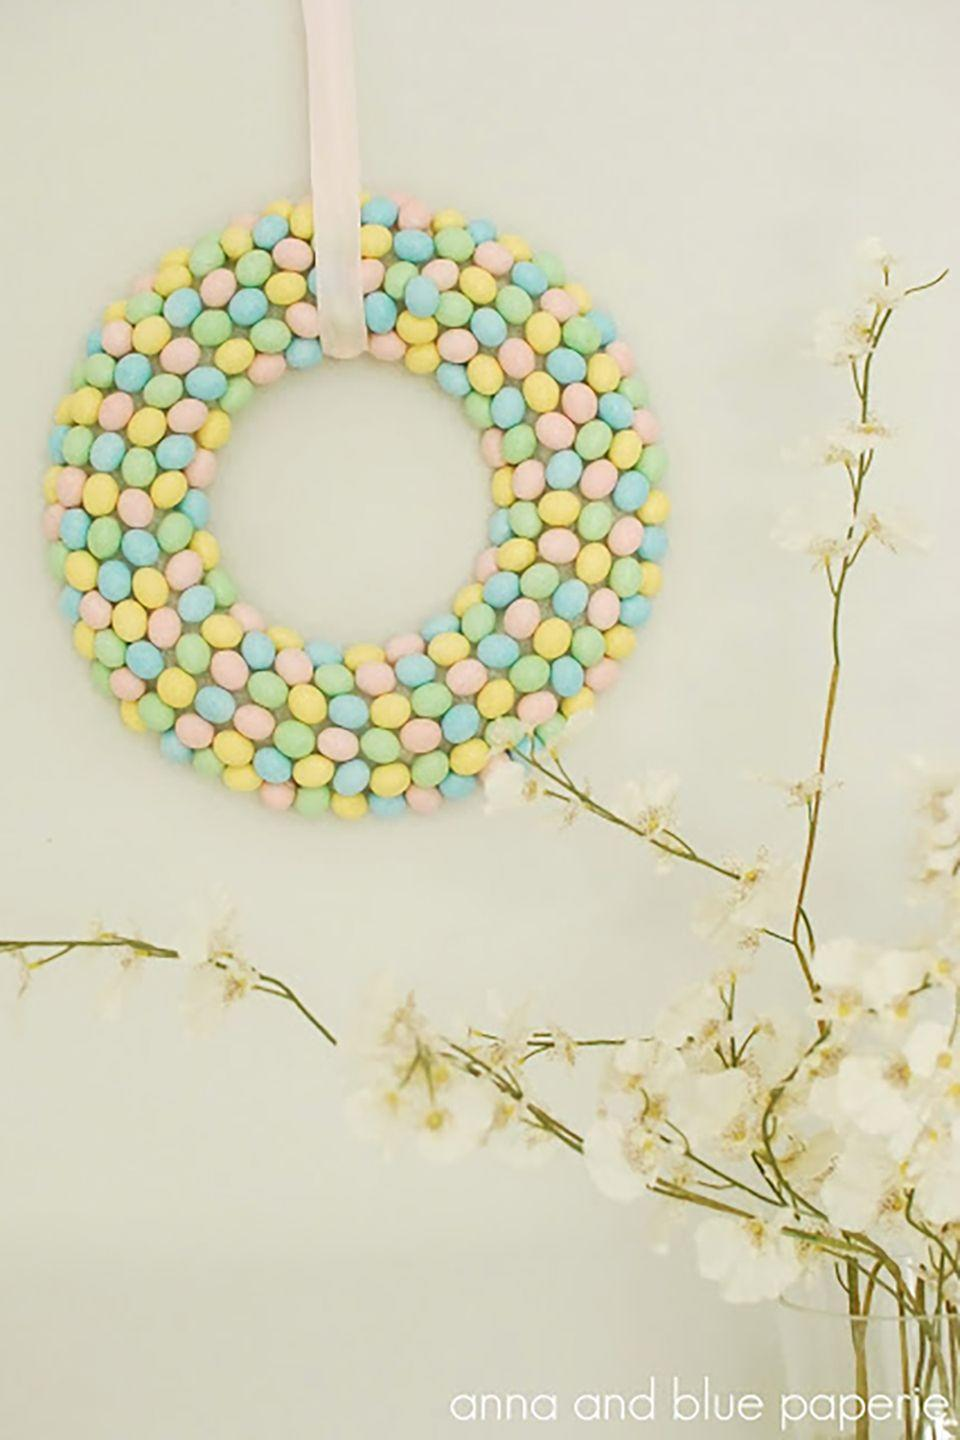 """<p>This sweet wreath is an easy way to make your home festive for Easter.</p><p><strong>Get the tutorial at <a href=""""http://annaandblue.blogspot.com/2012/04/diy-tutorial-spring-candy-wreath.html"""" rel=""""nofollow noopener"""" target=""""_blank"""" data-ylk=""""slk:Anna And Blue"""" class=""""link rapid-noclick-resp"""">Anna And Blue</a>. </strong></p><p><strong><a class=""""link rapid-noclick-resp"""" href=""""https://www.amazon.com/Cadbury-Easter-Candy-Coated-Chocolate/dp/B007IW68MM?tag=syn-yahoo-20&ascsubtag=%5Bartid%7C10050.g.4088%5Bsrc%7Cyahoo-us"""" rel=""""nofollow noopener"""" target=""""_blank"""" data-ylk=""""slk:SHOP CHOCOLATE EGGS"""">SHOP CHOCOLATE EGGS</a><br></strong></p>"""